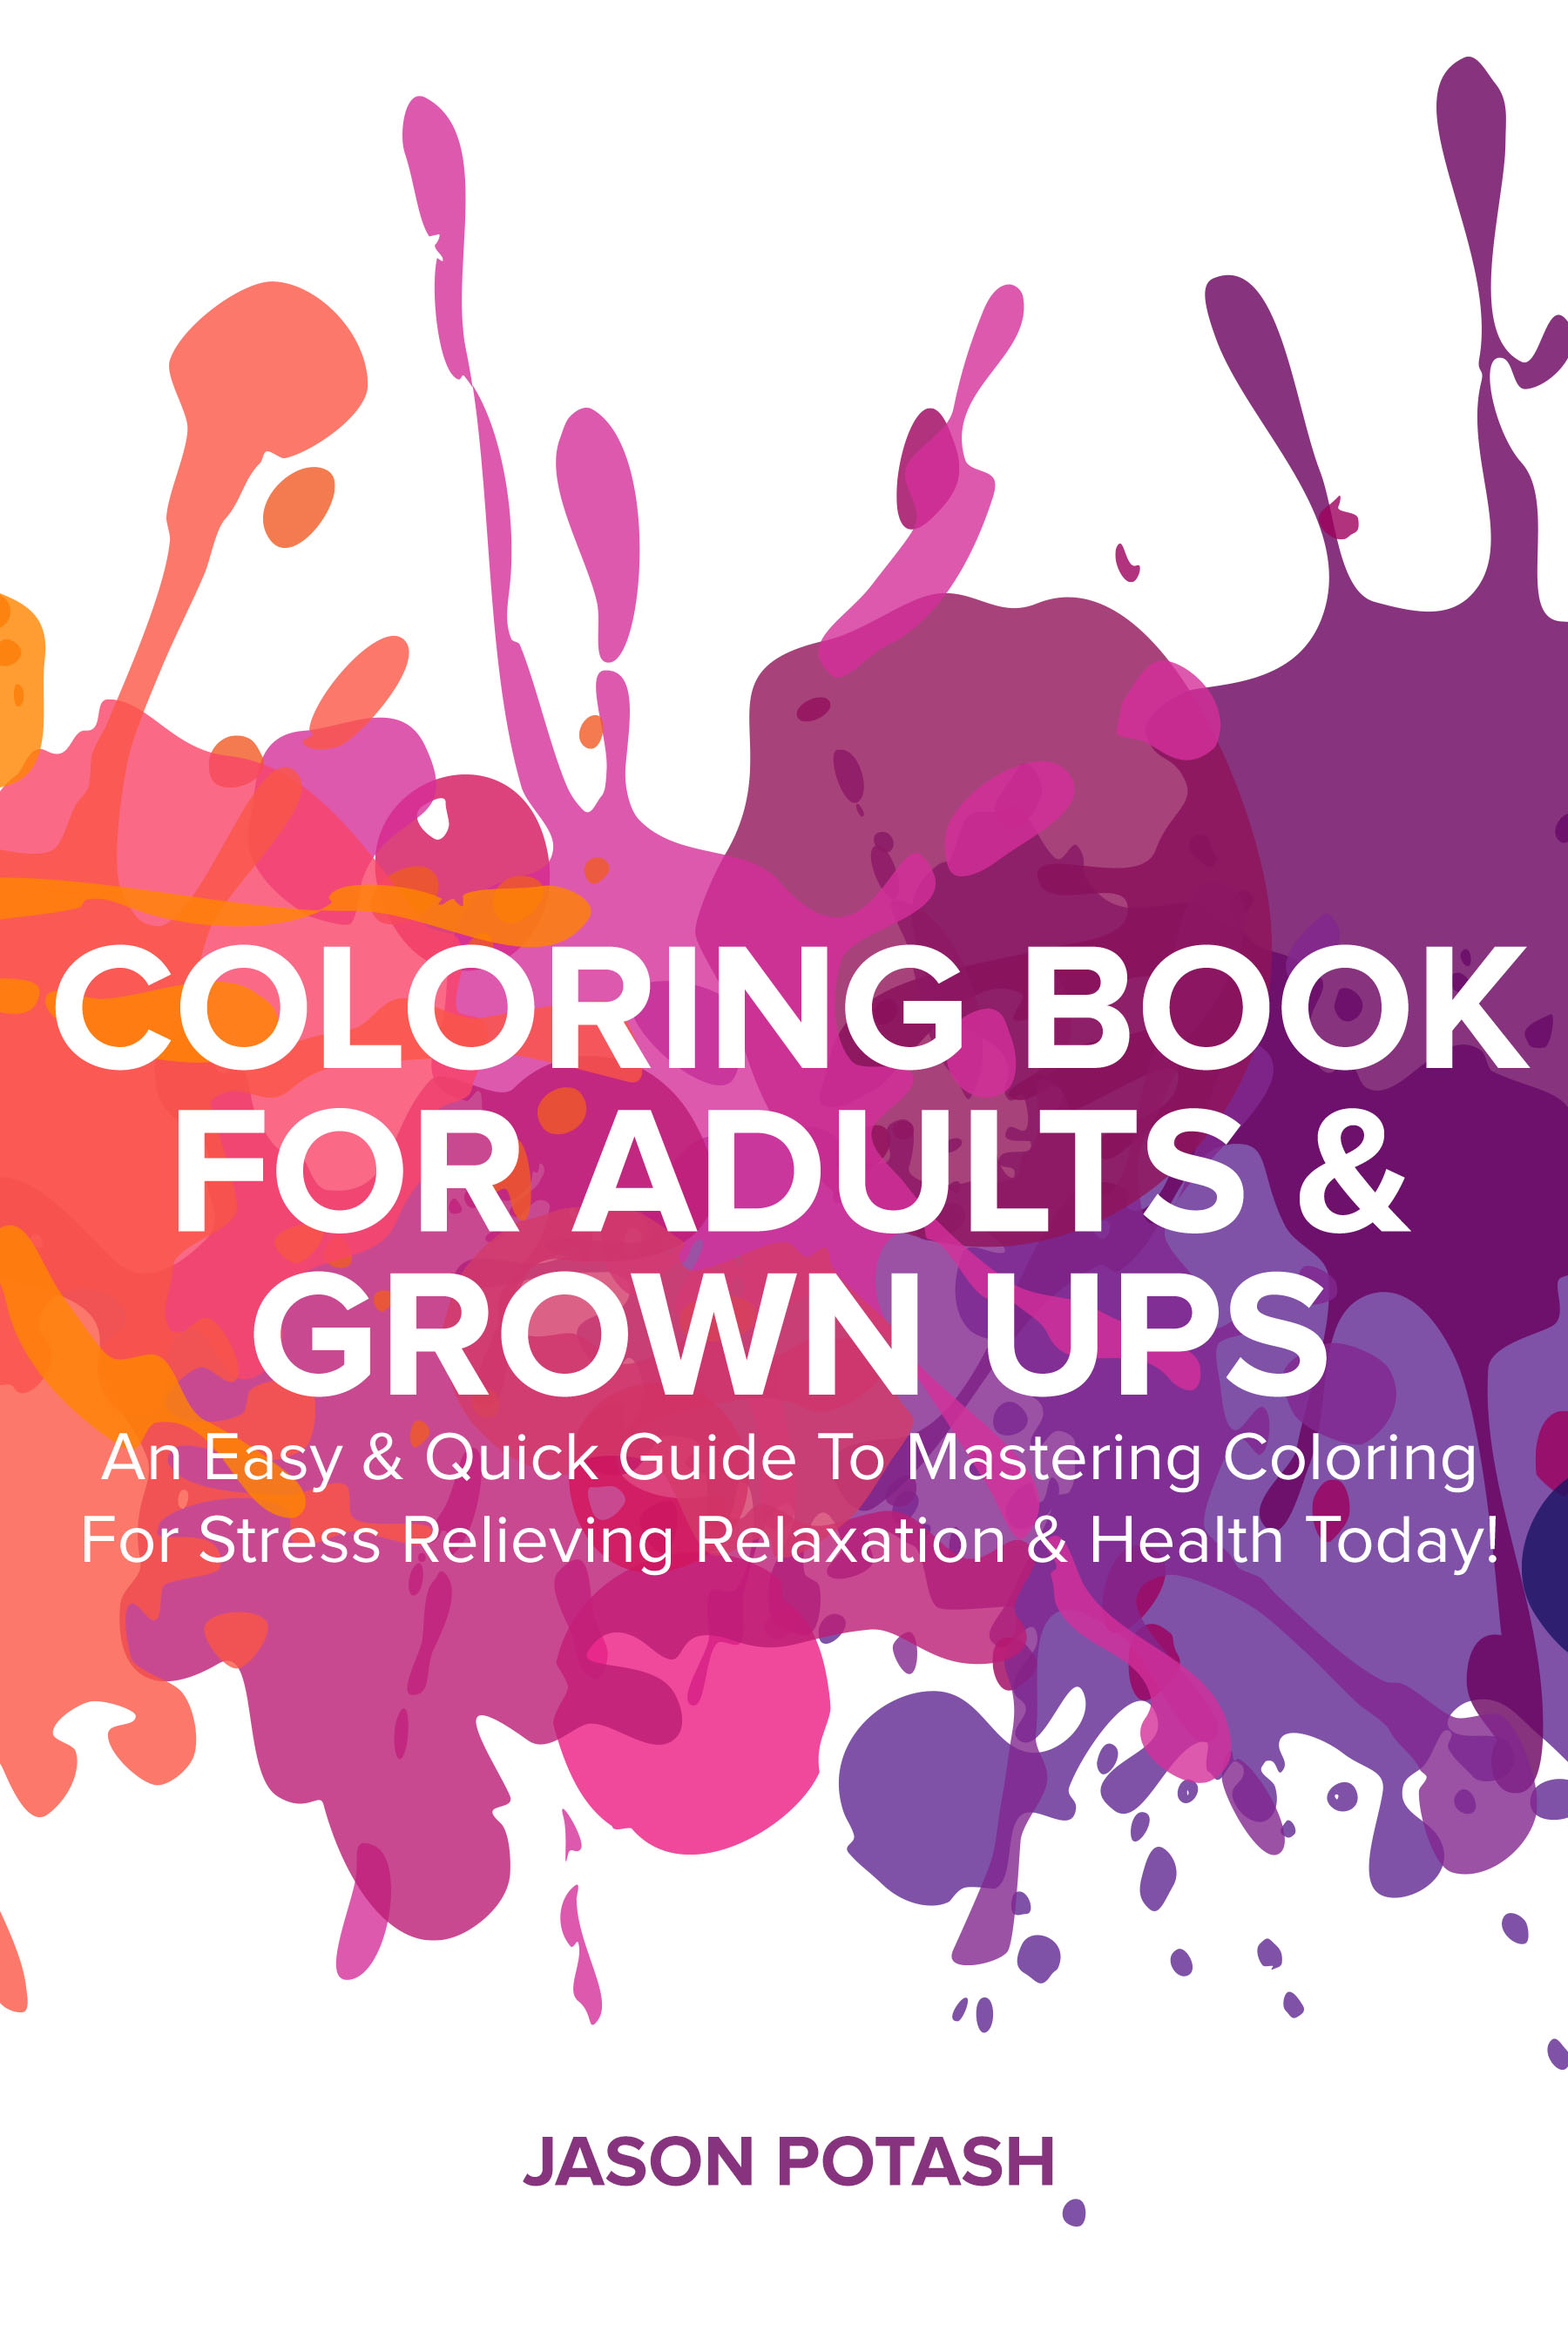 Coloring book for adults & grown ups : an easy & quick guide to mastering coloring